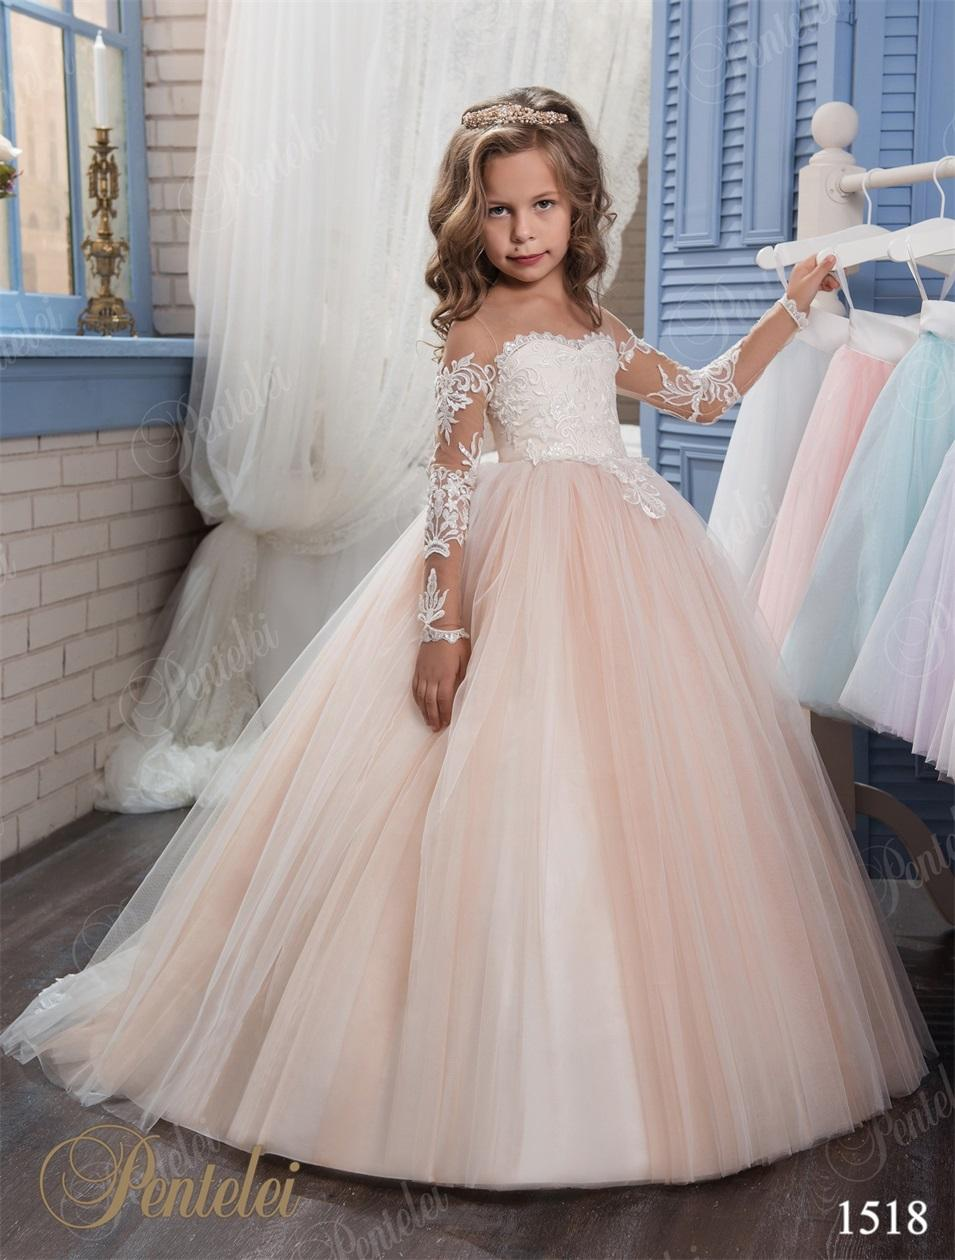 Kids Wedding Dresses 2017 Pentelei With Illusion Long Sleeves And ...